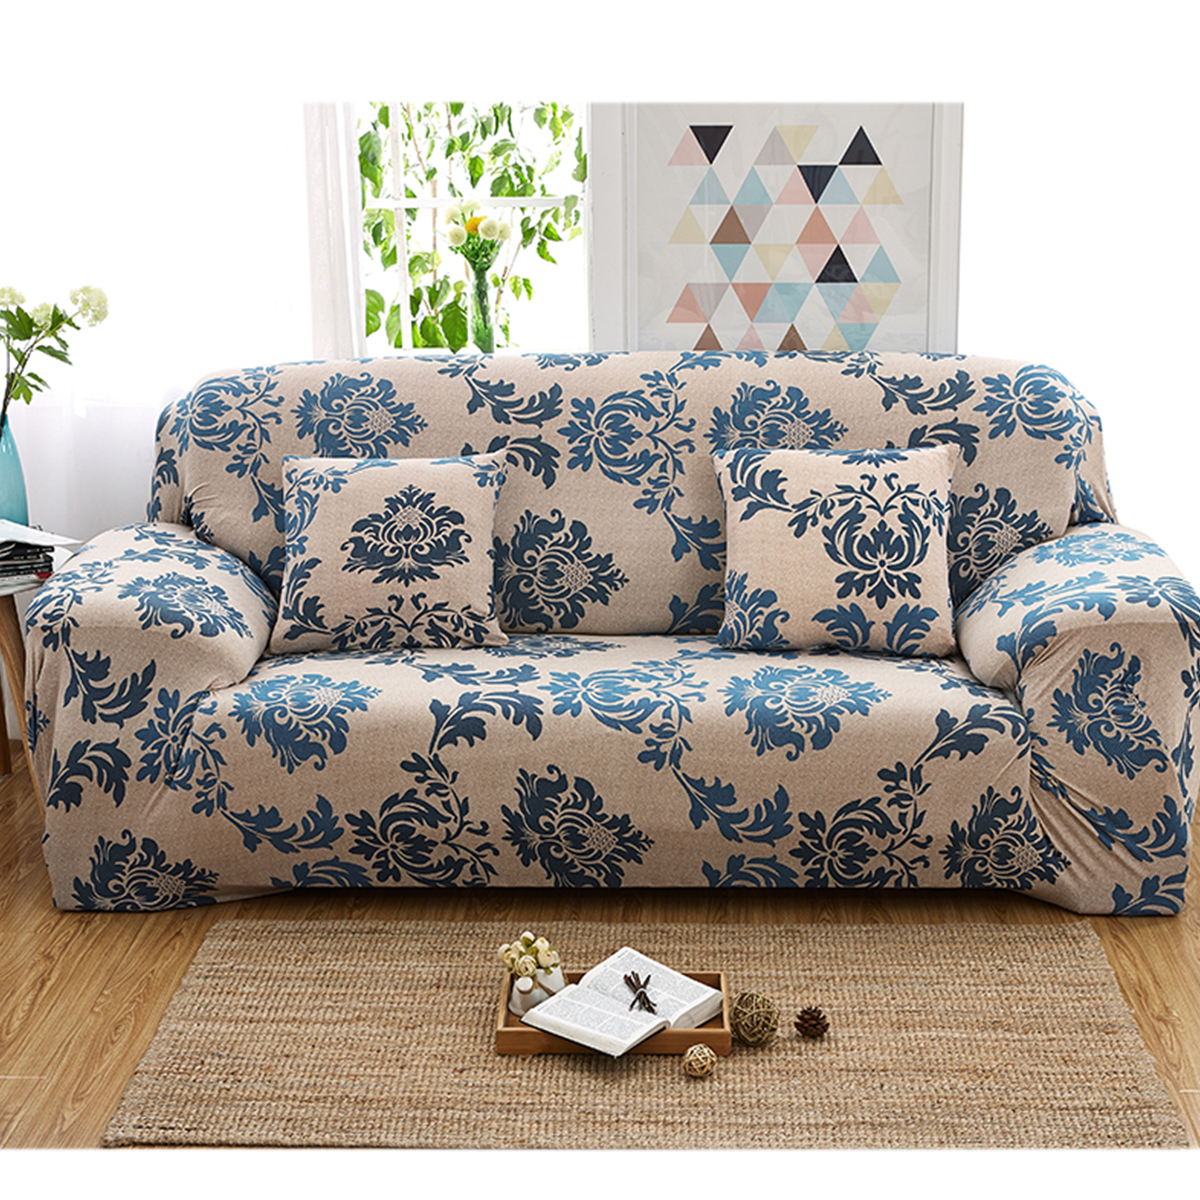 Anti Slip Sofa Cover For Leather Sofa Couch Cover Slip Resistant Couch Cover For Leather Sofa Sofa Covers For Living Room Walmart Com Walmart Com